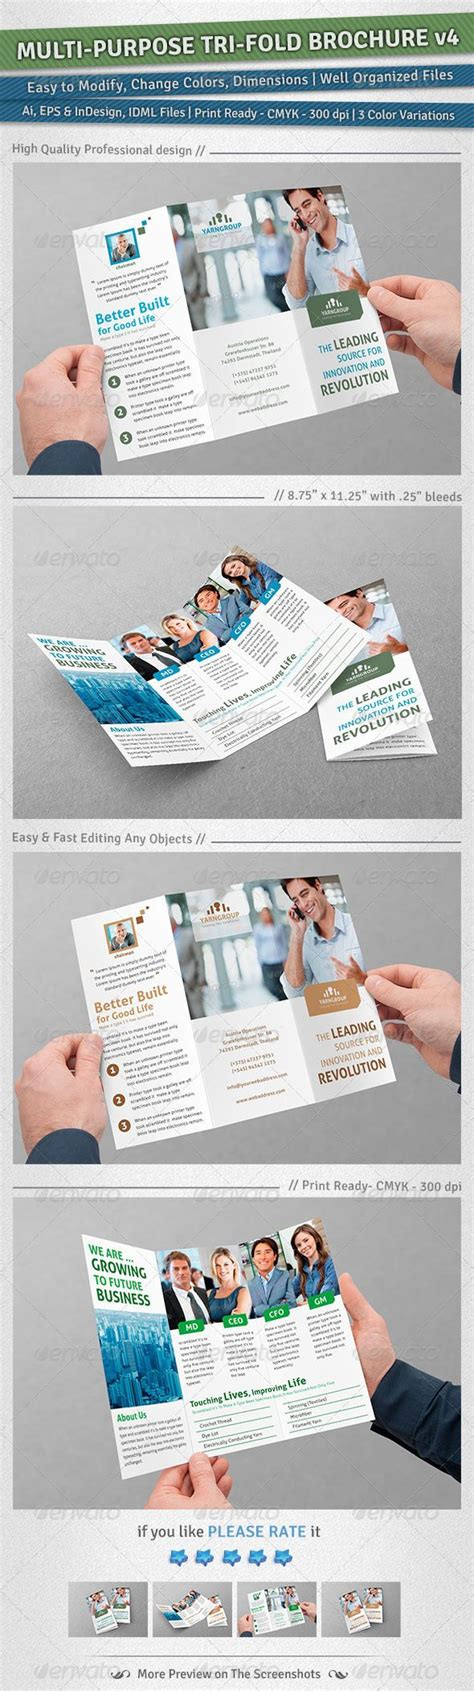 brochure templates for photoshop cs6 87 best images about print templates on pinterest adobe